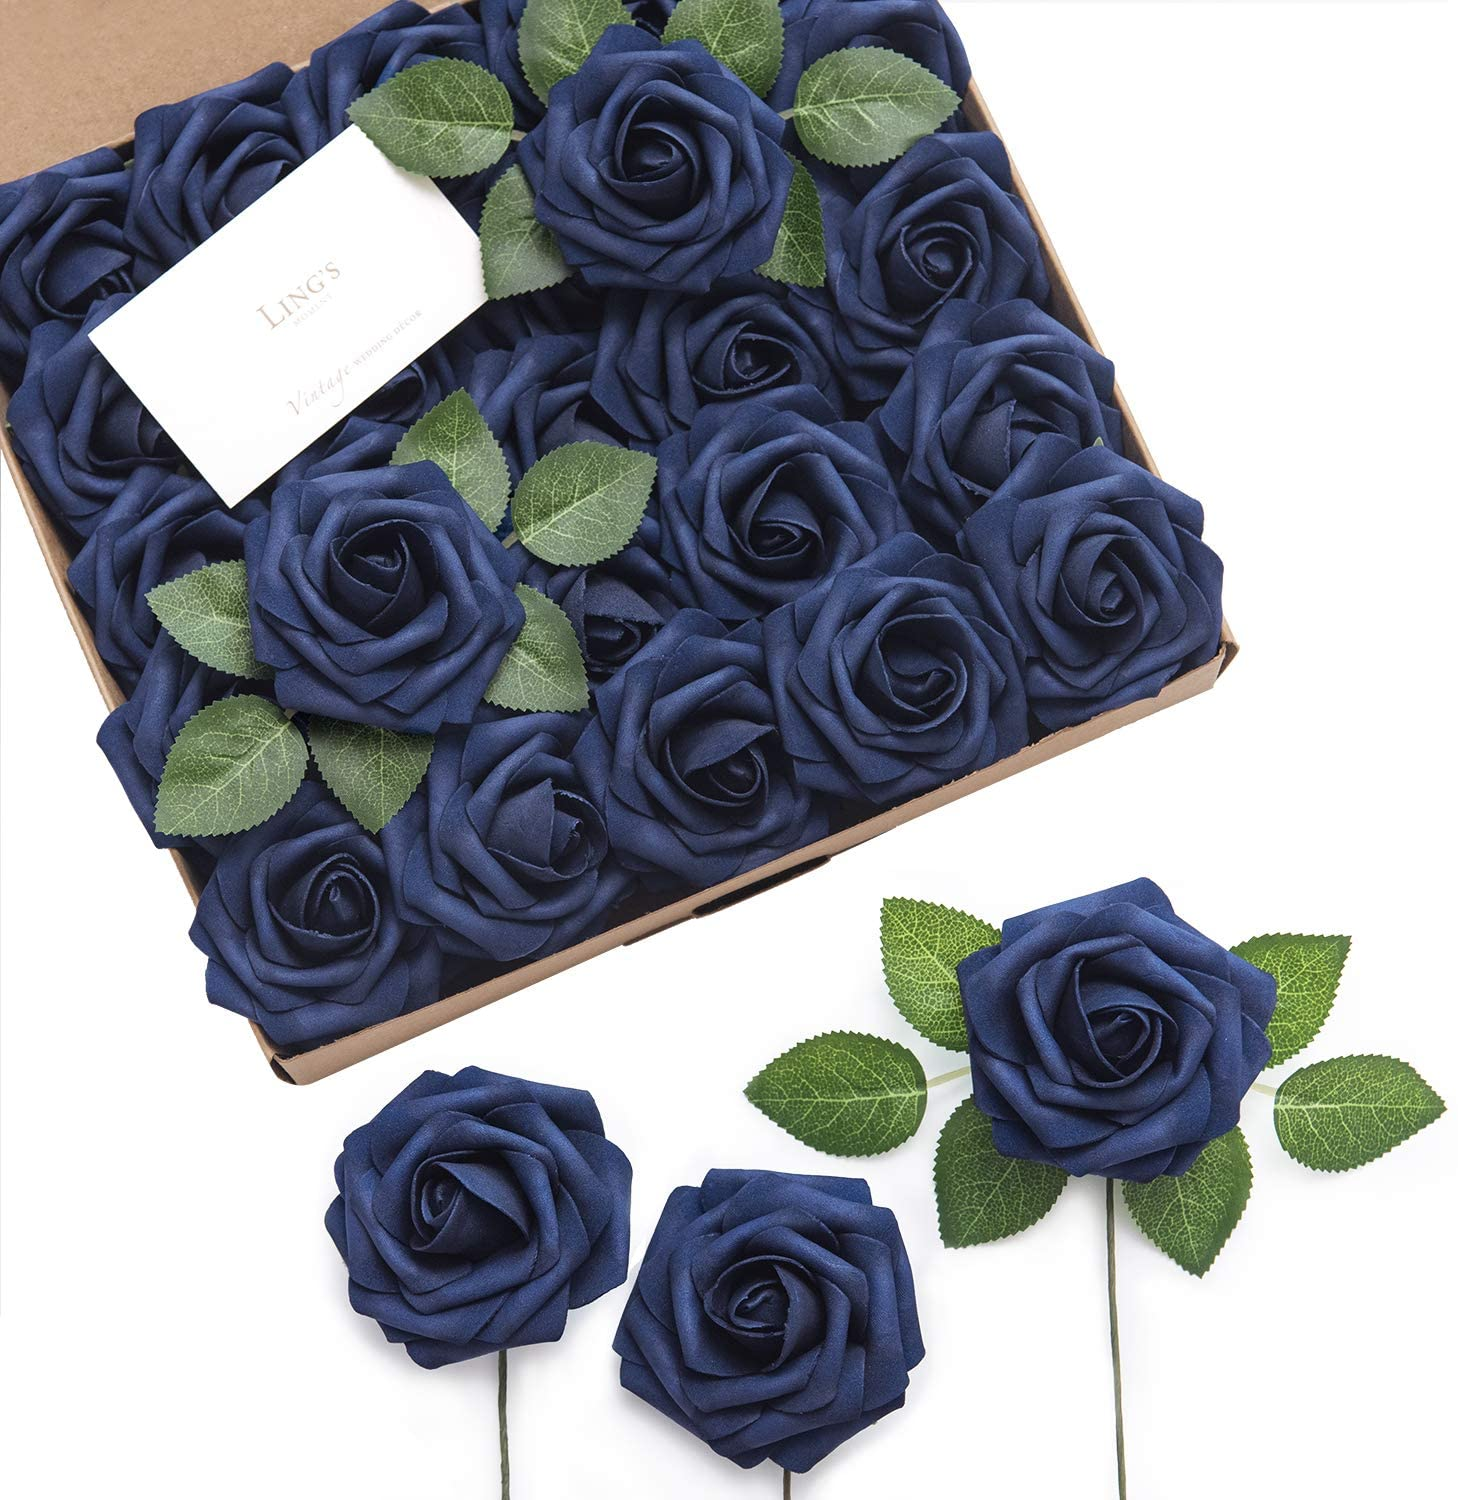 Gifts Ling's moment Artificial Rose Ranking integrated 1st place Flowers Navy Blue Roses Foam 50pcs